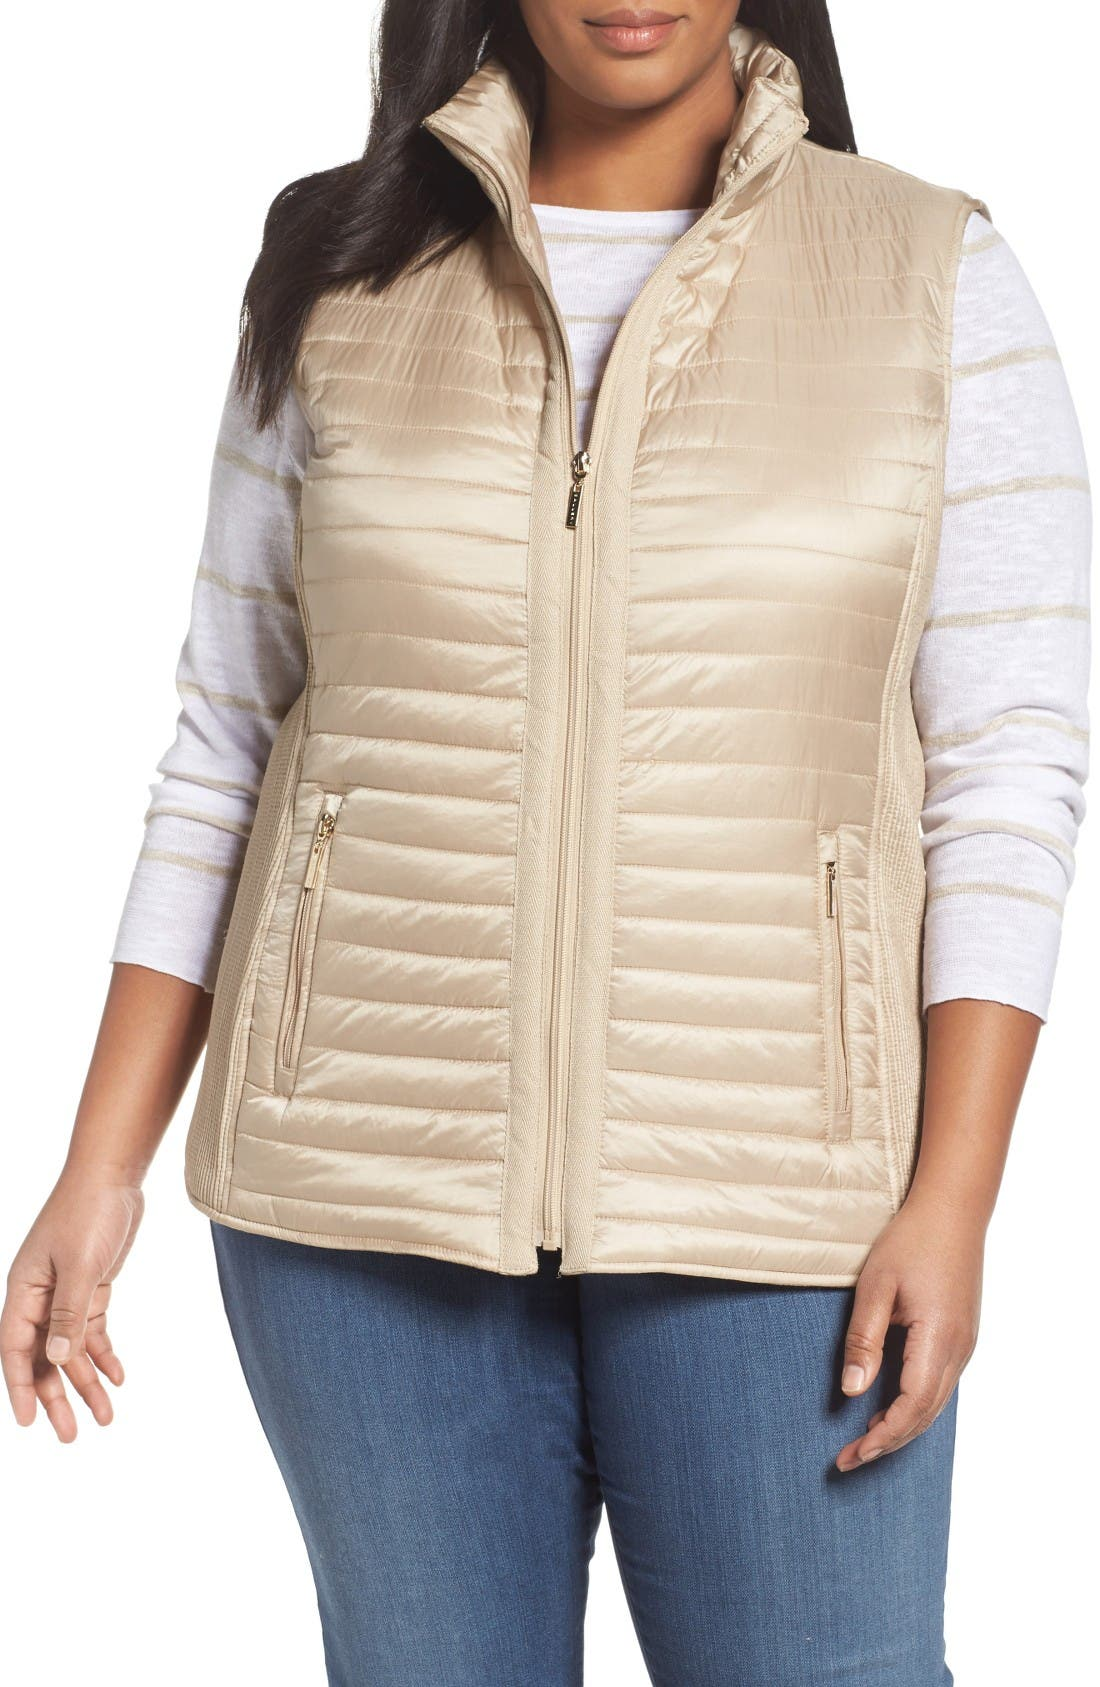 Main Image - Gallery Mixed Media Zip Front Vest (Plus Size)